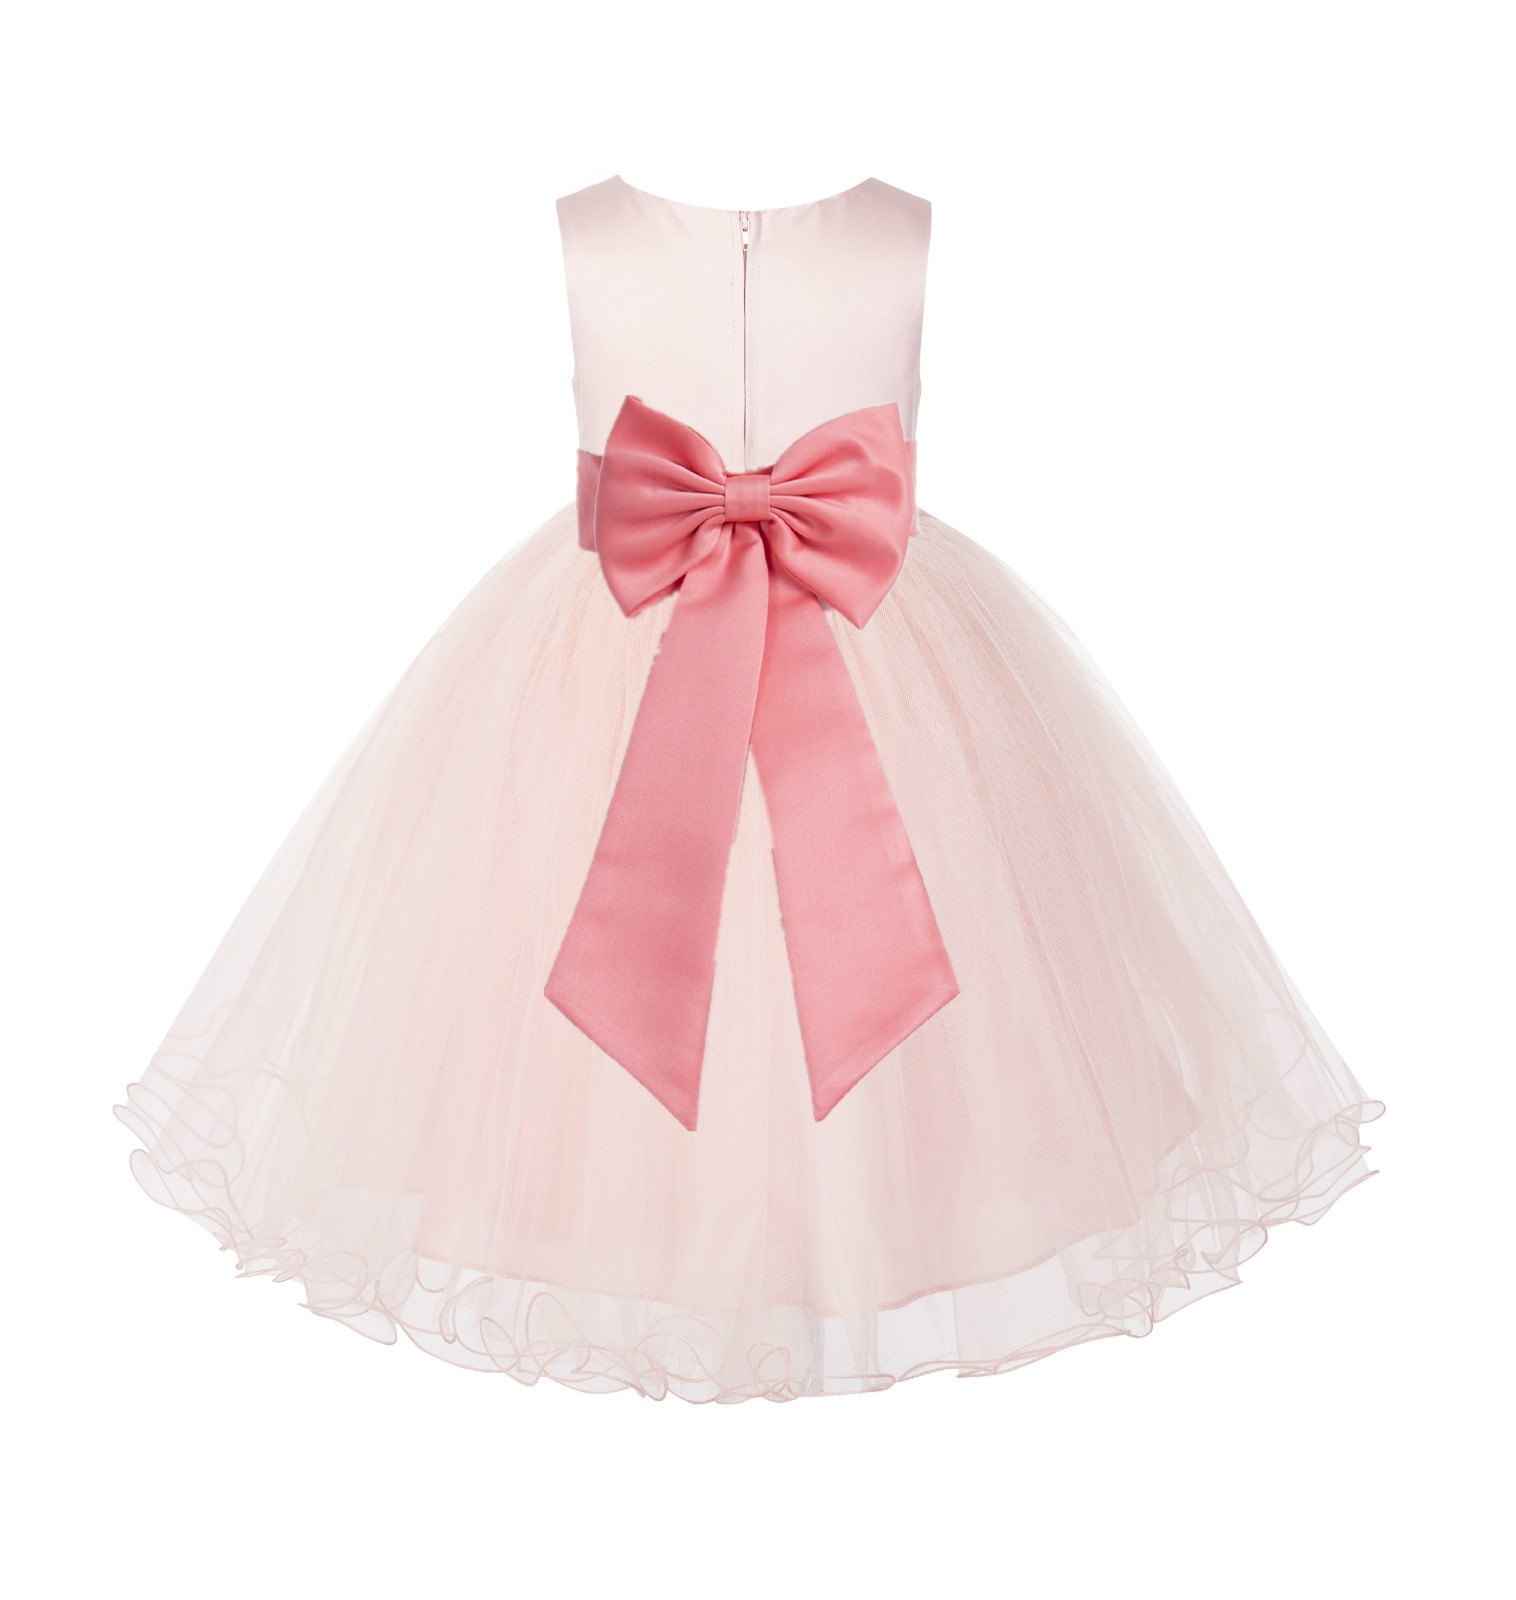 Blush PInk / Coral Tulle Rattail Edge Flower Girl Dress Wedding Bridesmaid 829T